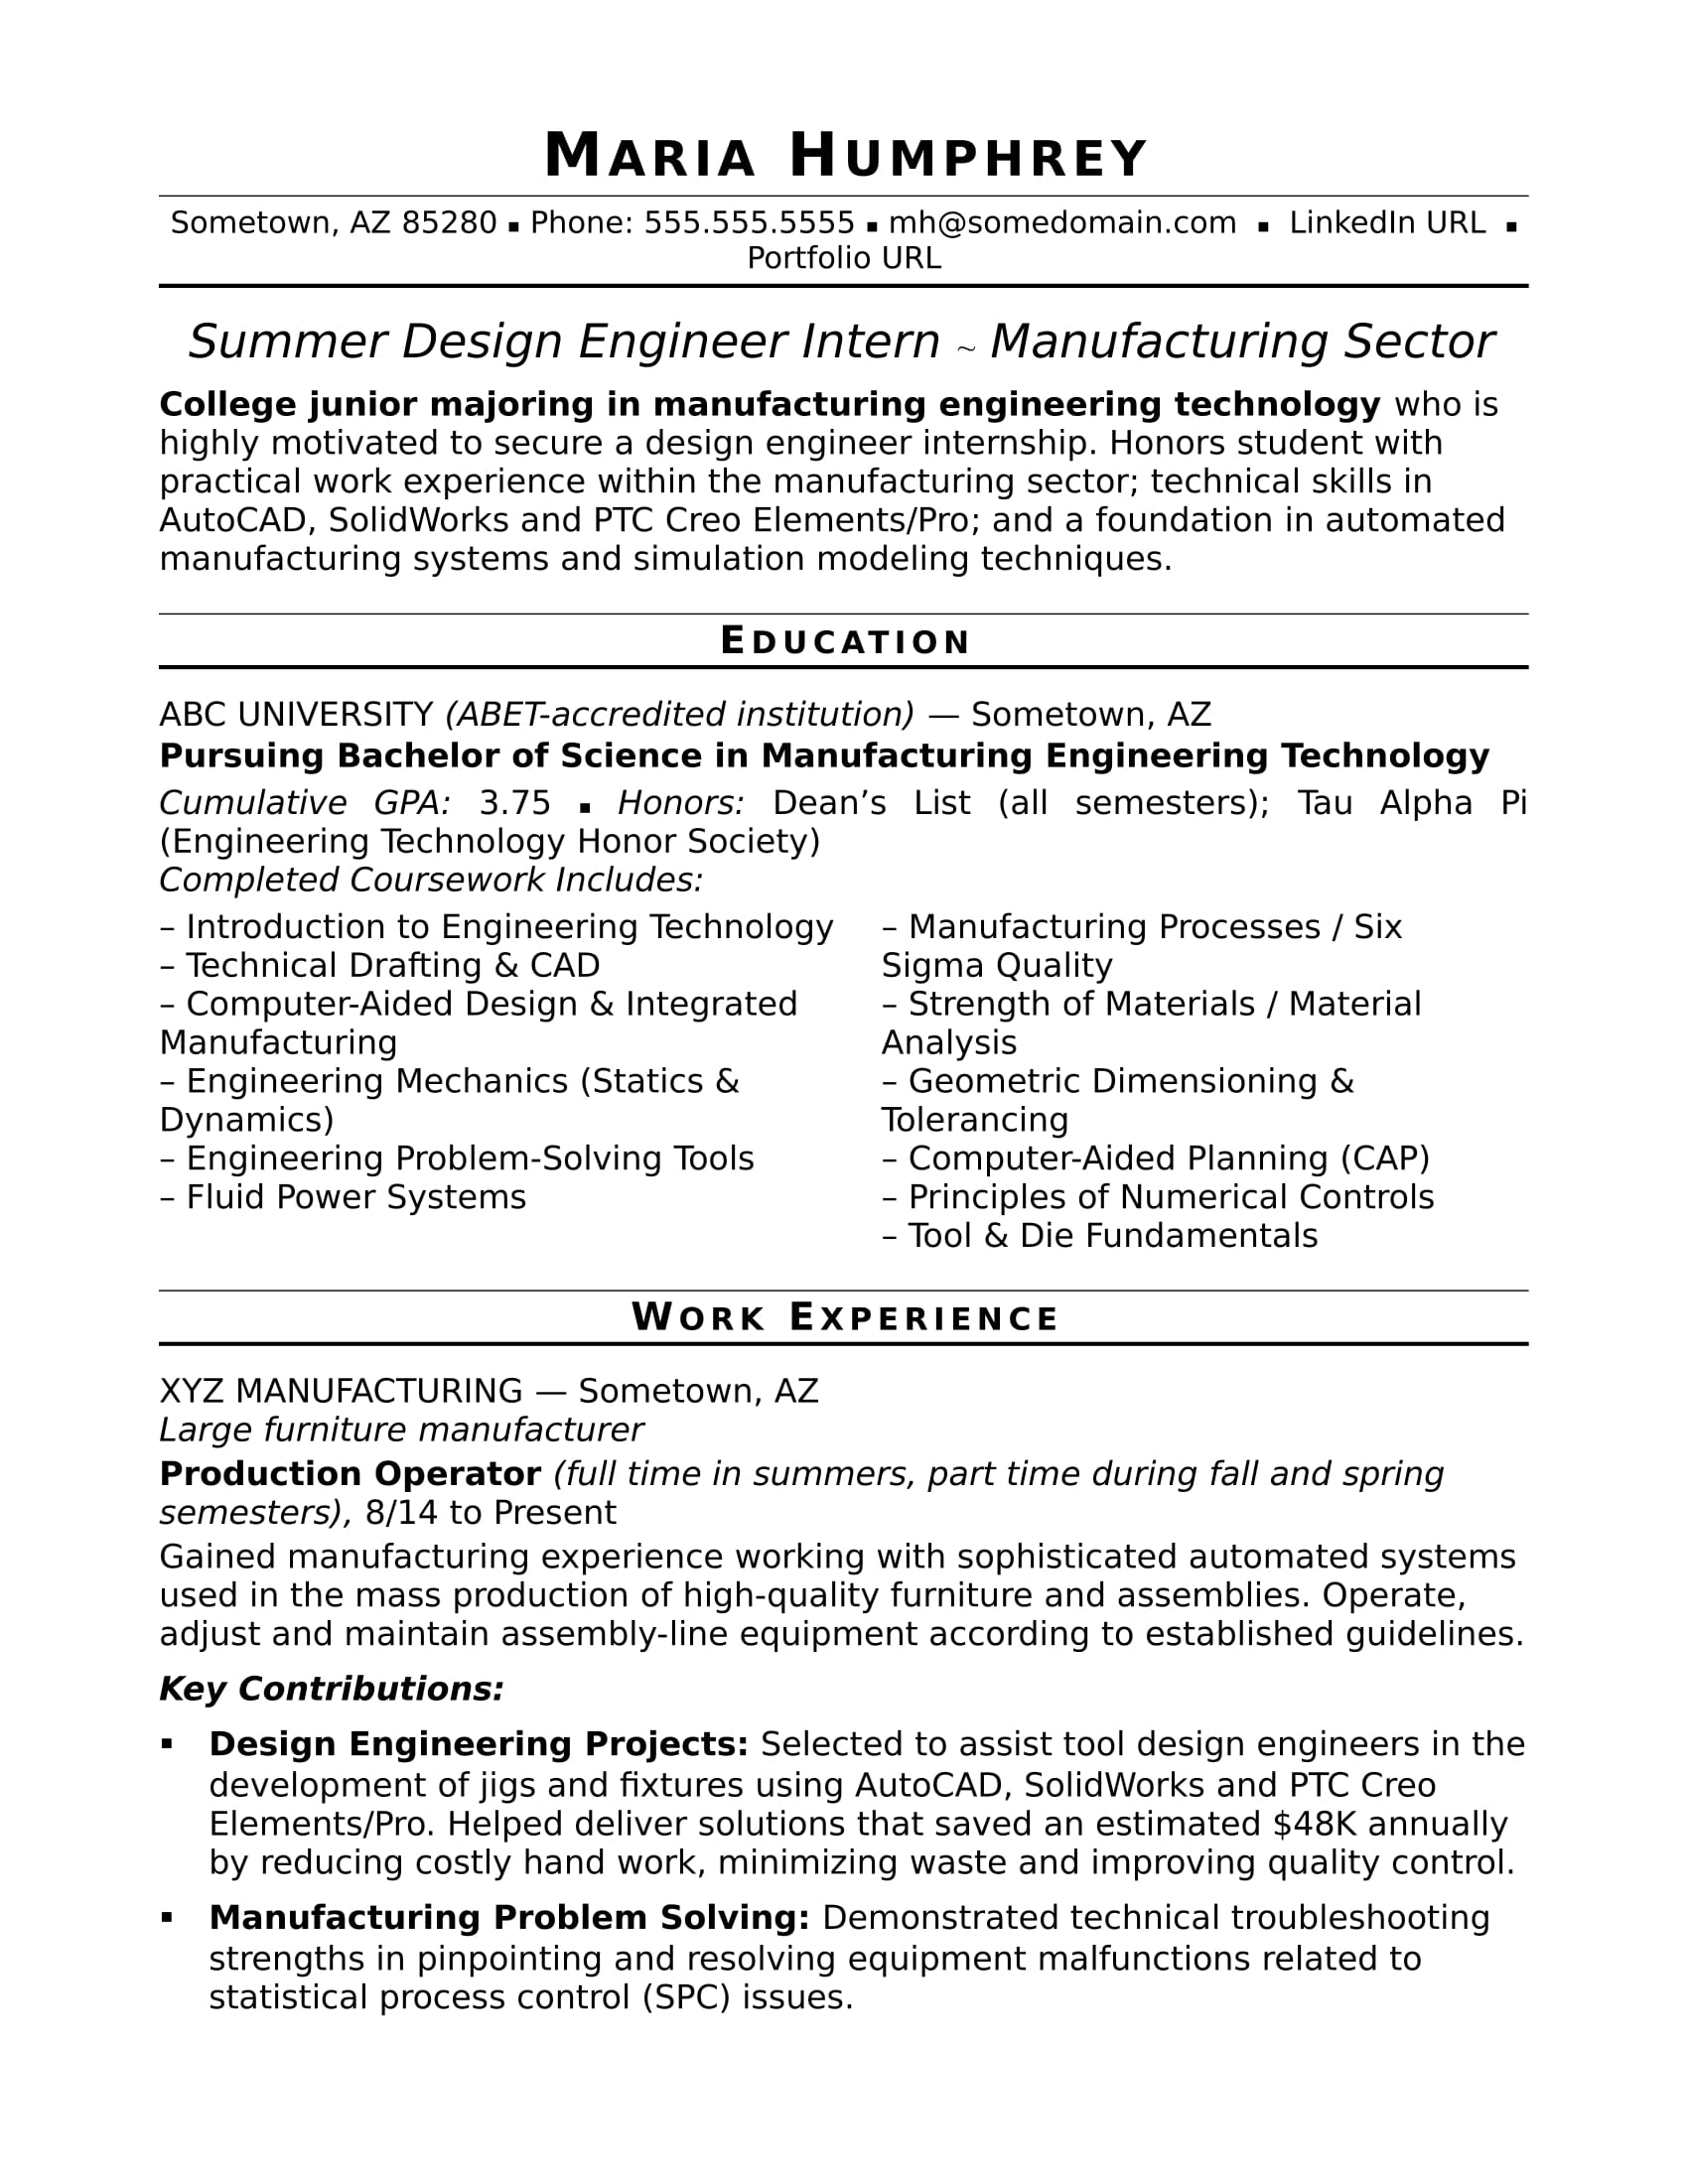 Awesome Sample Resume For An Entry Level Design Engineer Regarding Design Engineer Resume